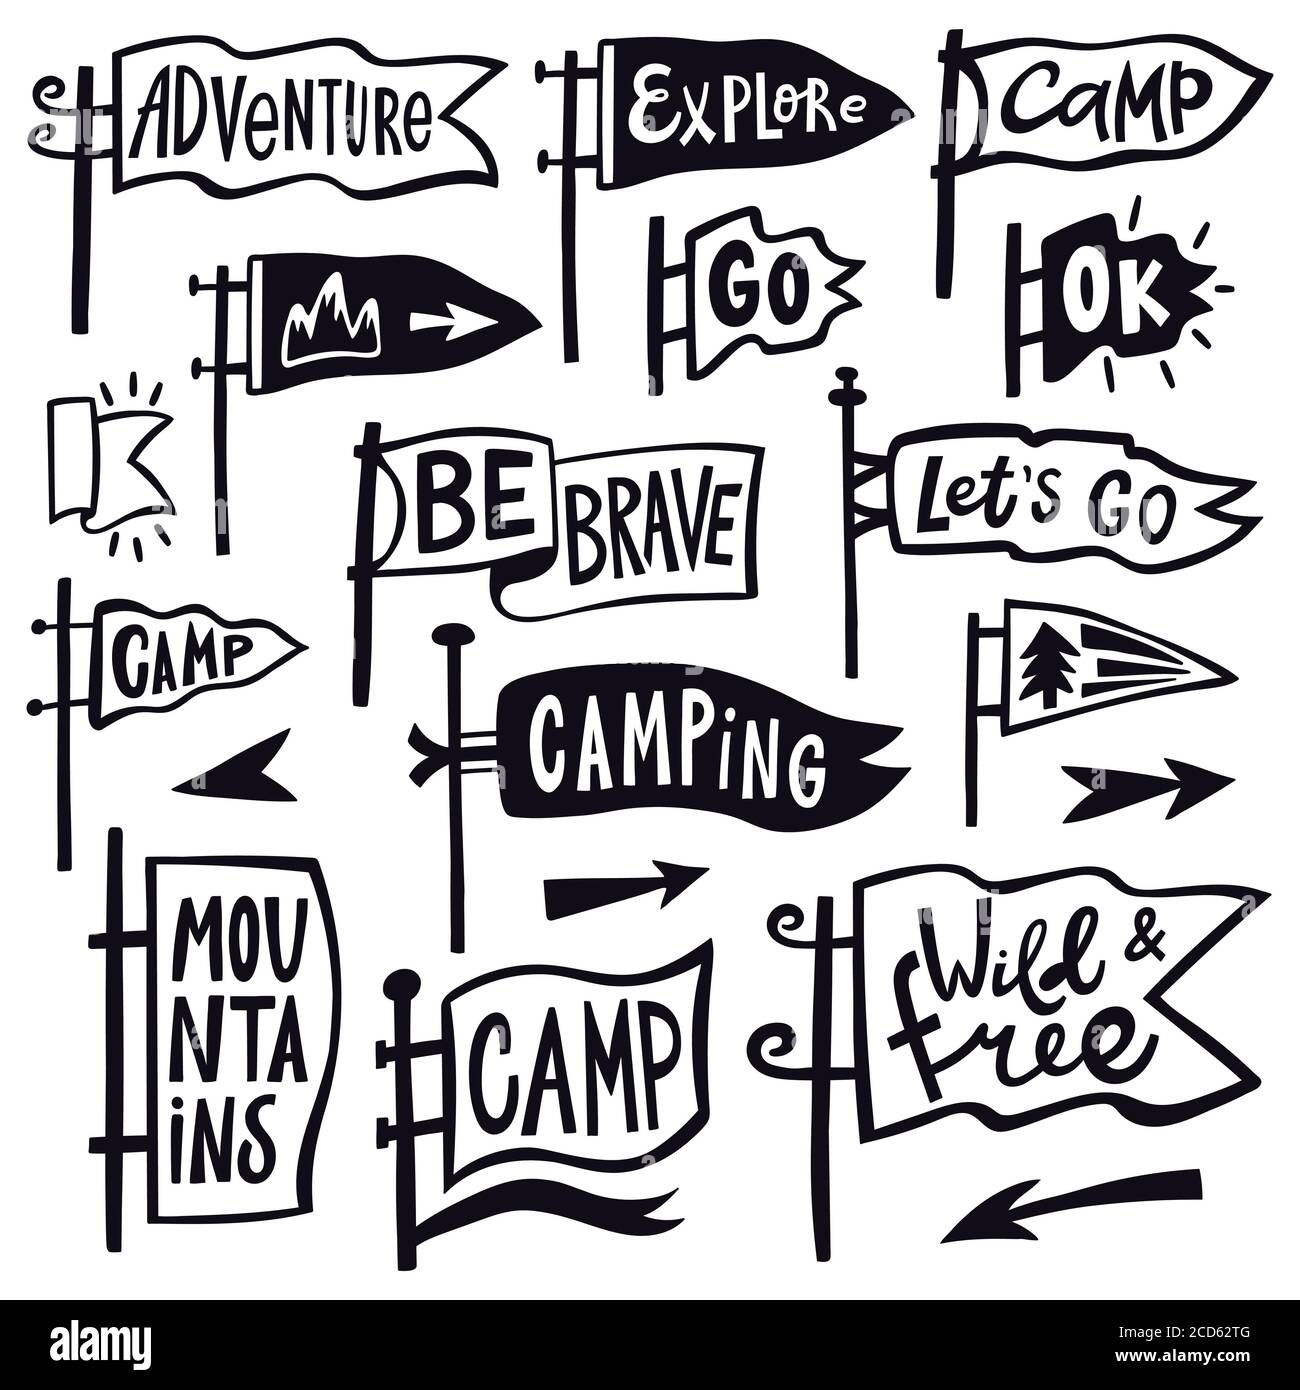 Adventure hiking pennant. Hand drawn camping pennant flag, vintage lettering flags, tourist quotation pennants vector illustration icons set Stock Vector